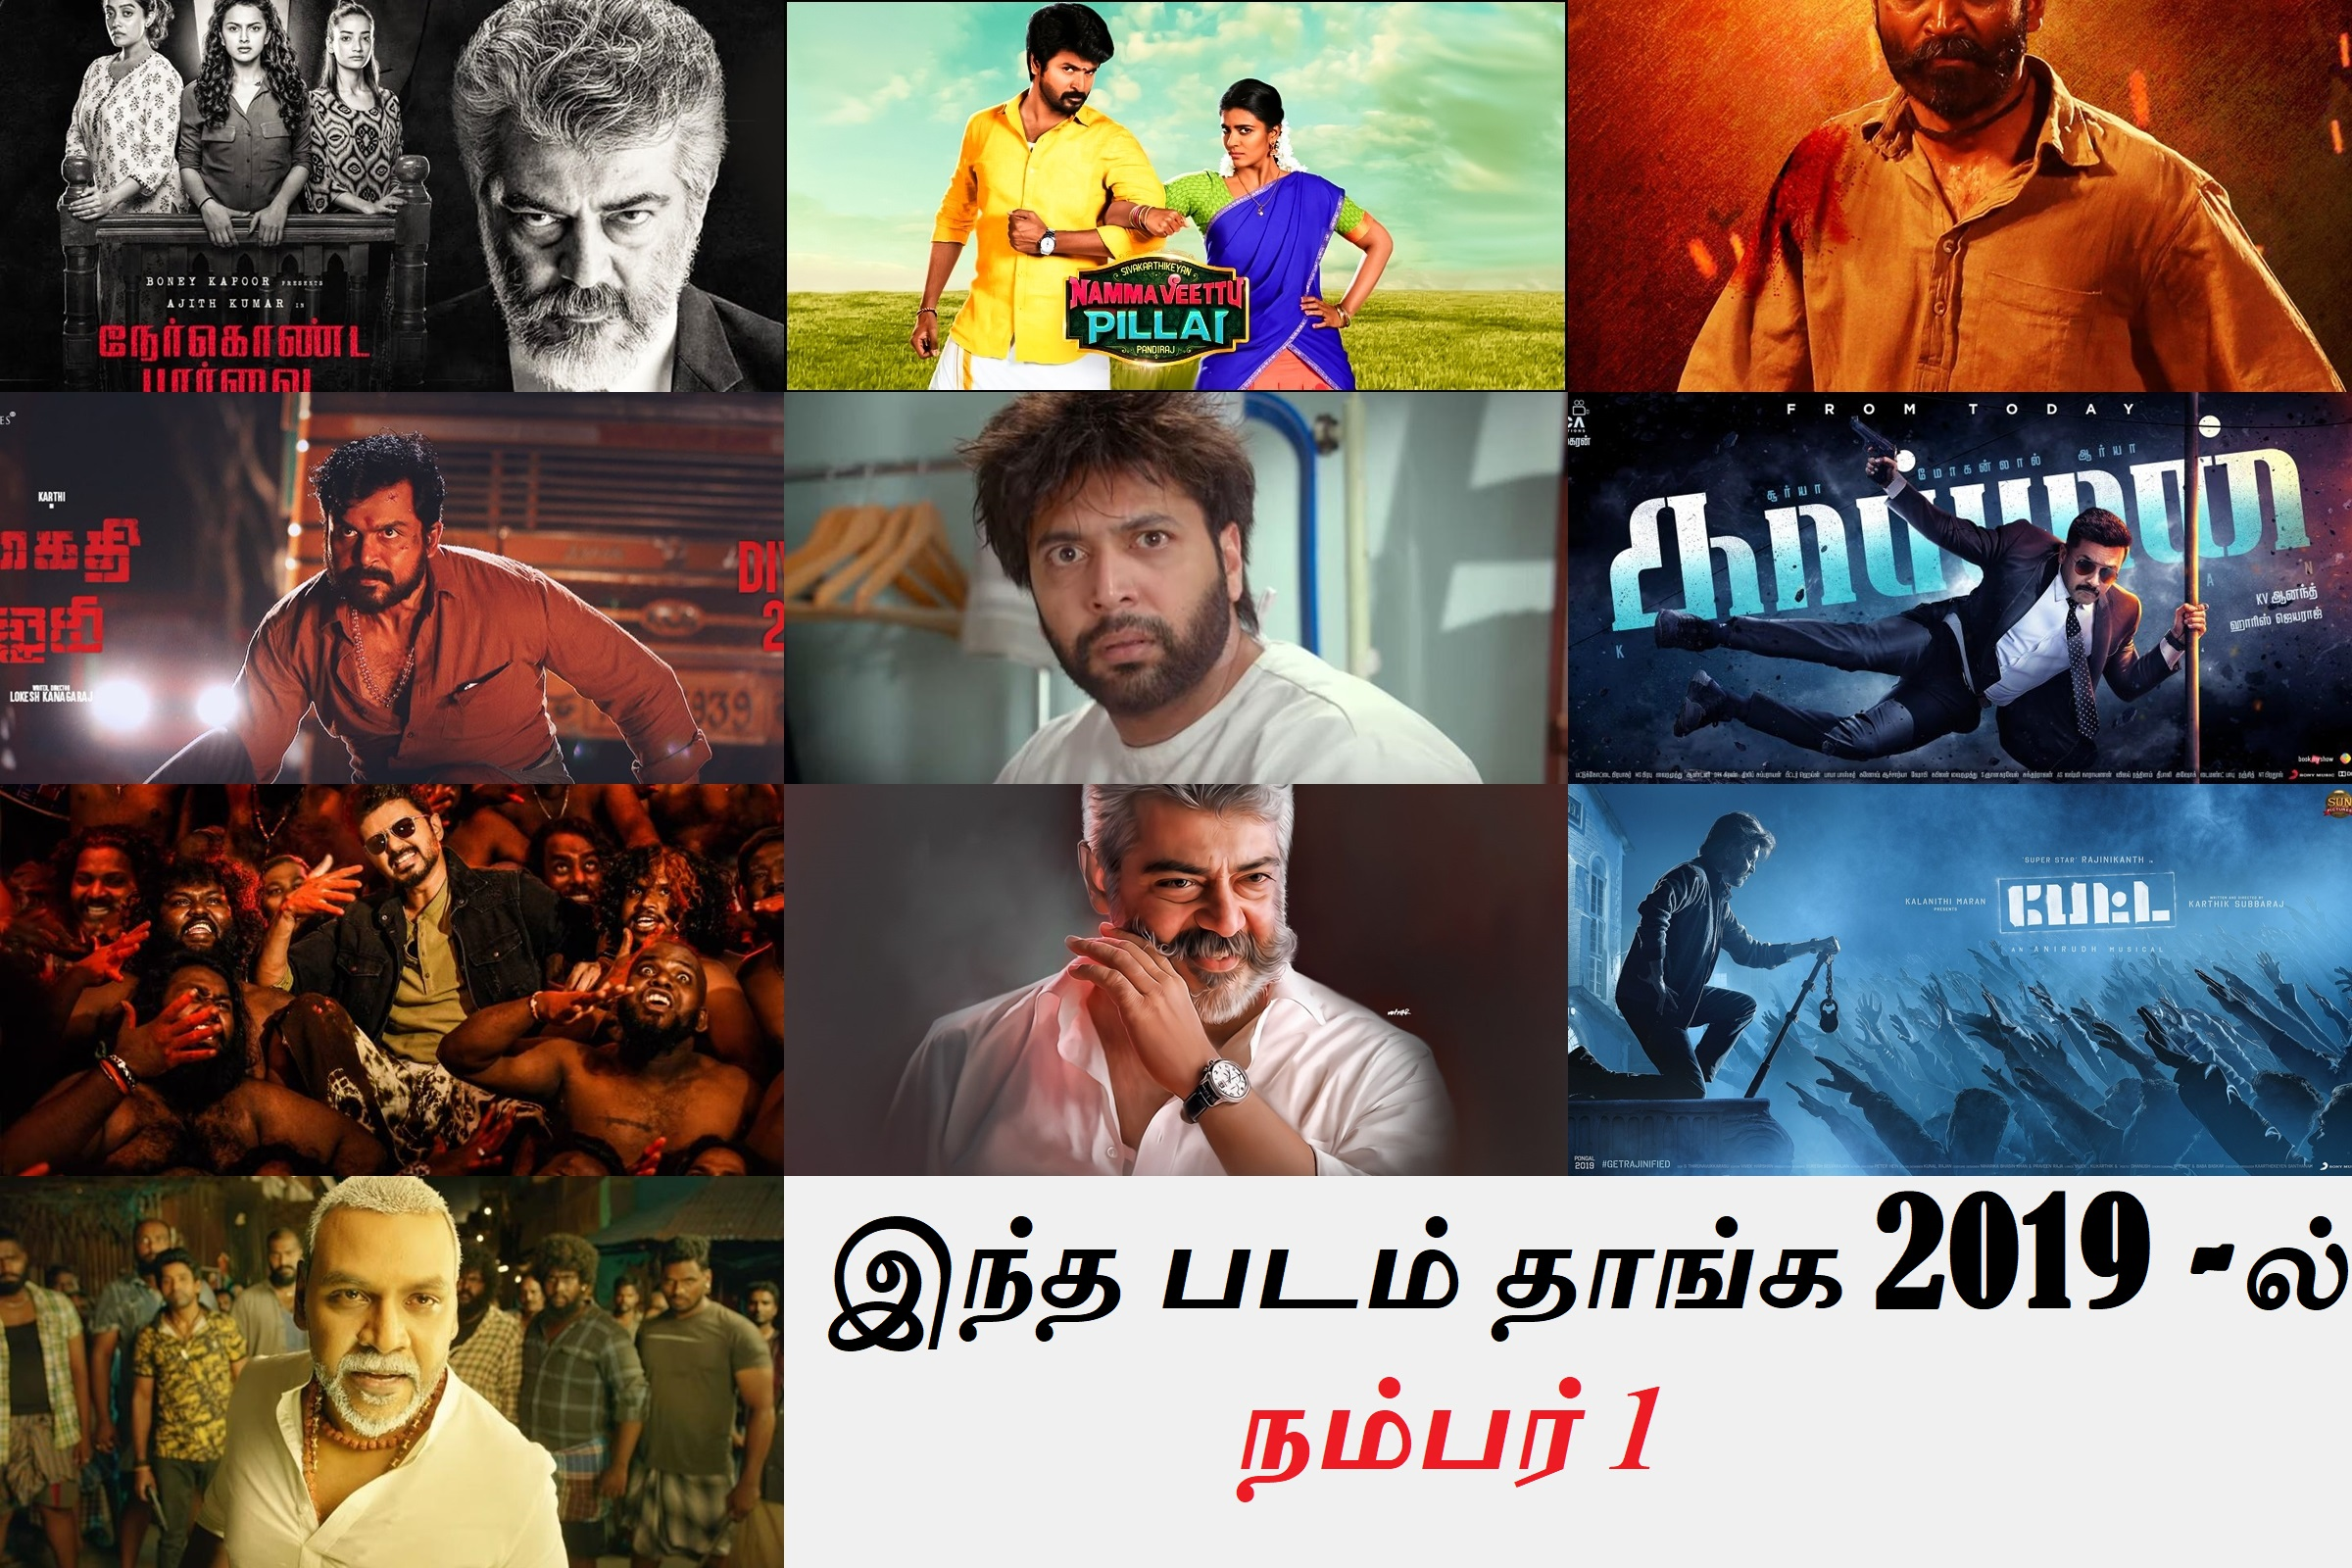 Top 10 highest grossing tamil movies 2019